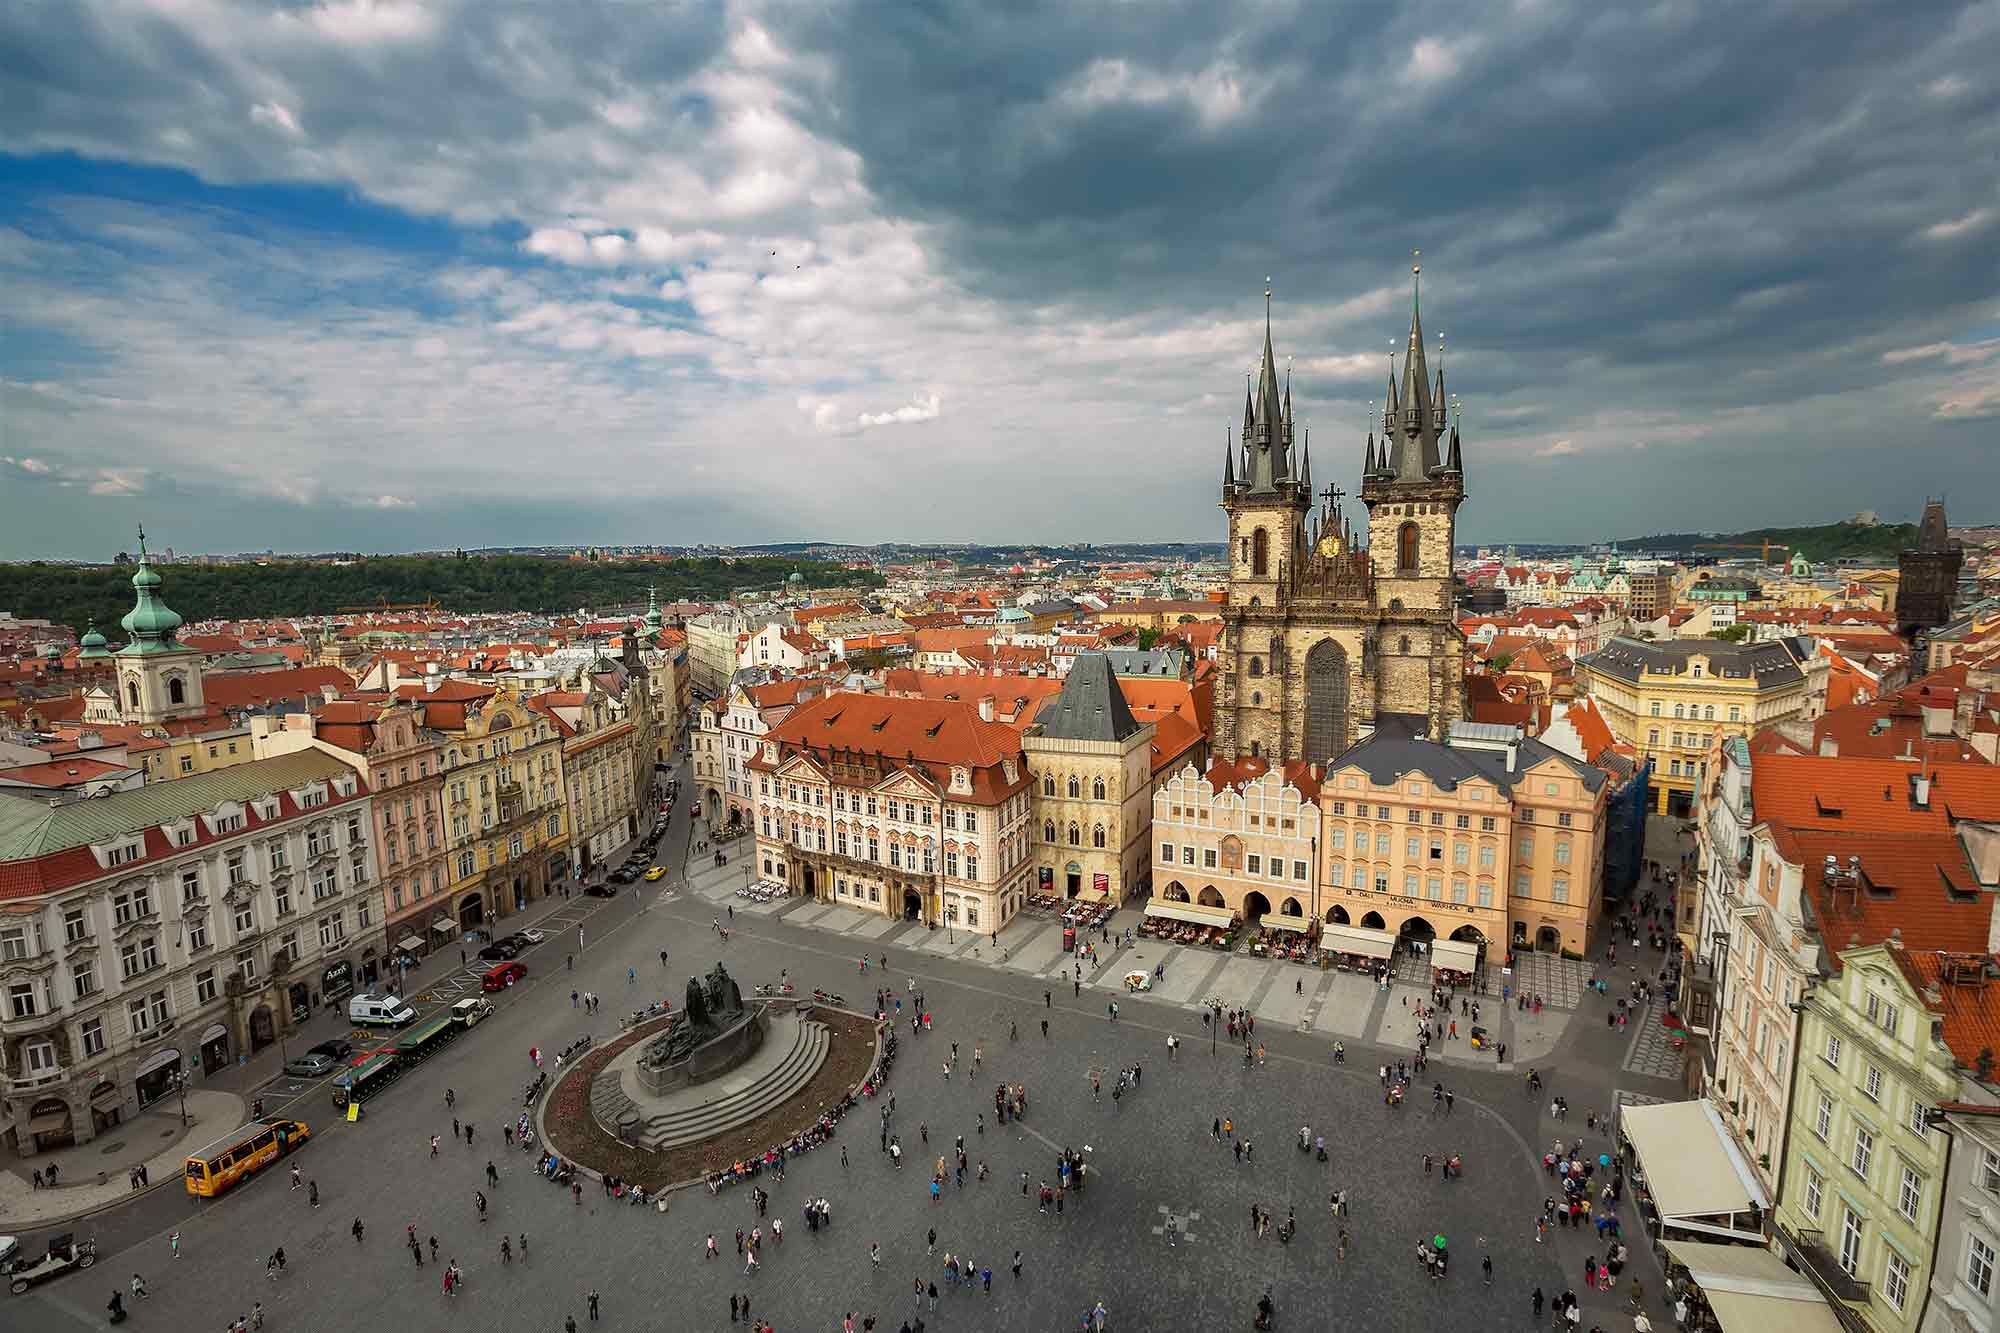 prague-old-town-spare-view-from-town-hall-czech-republic-1